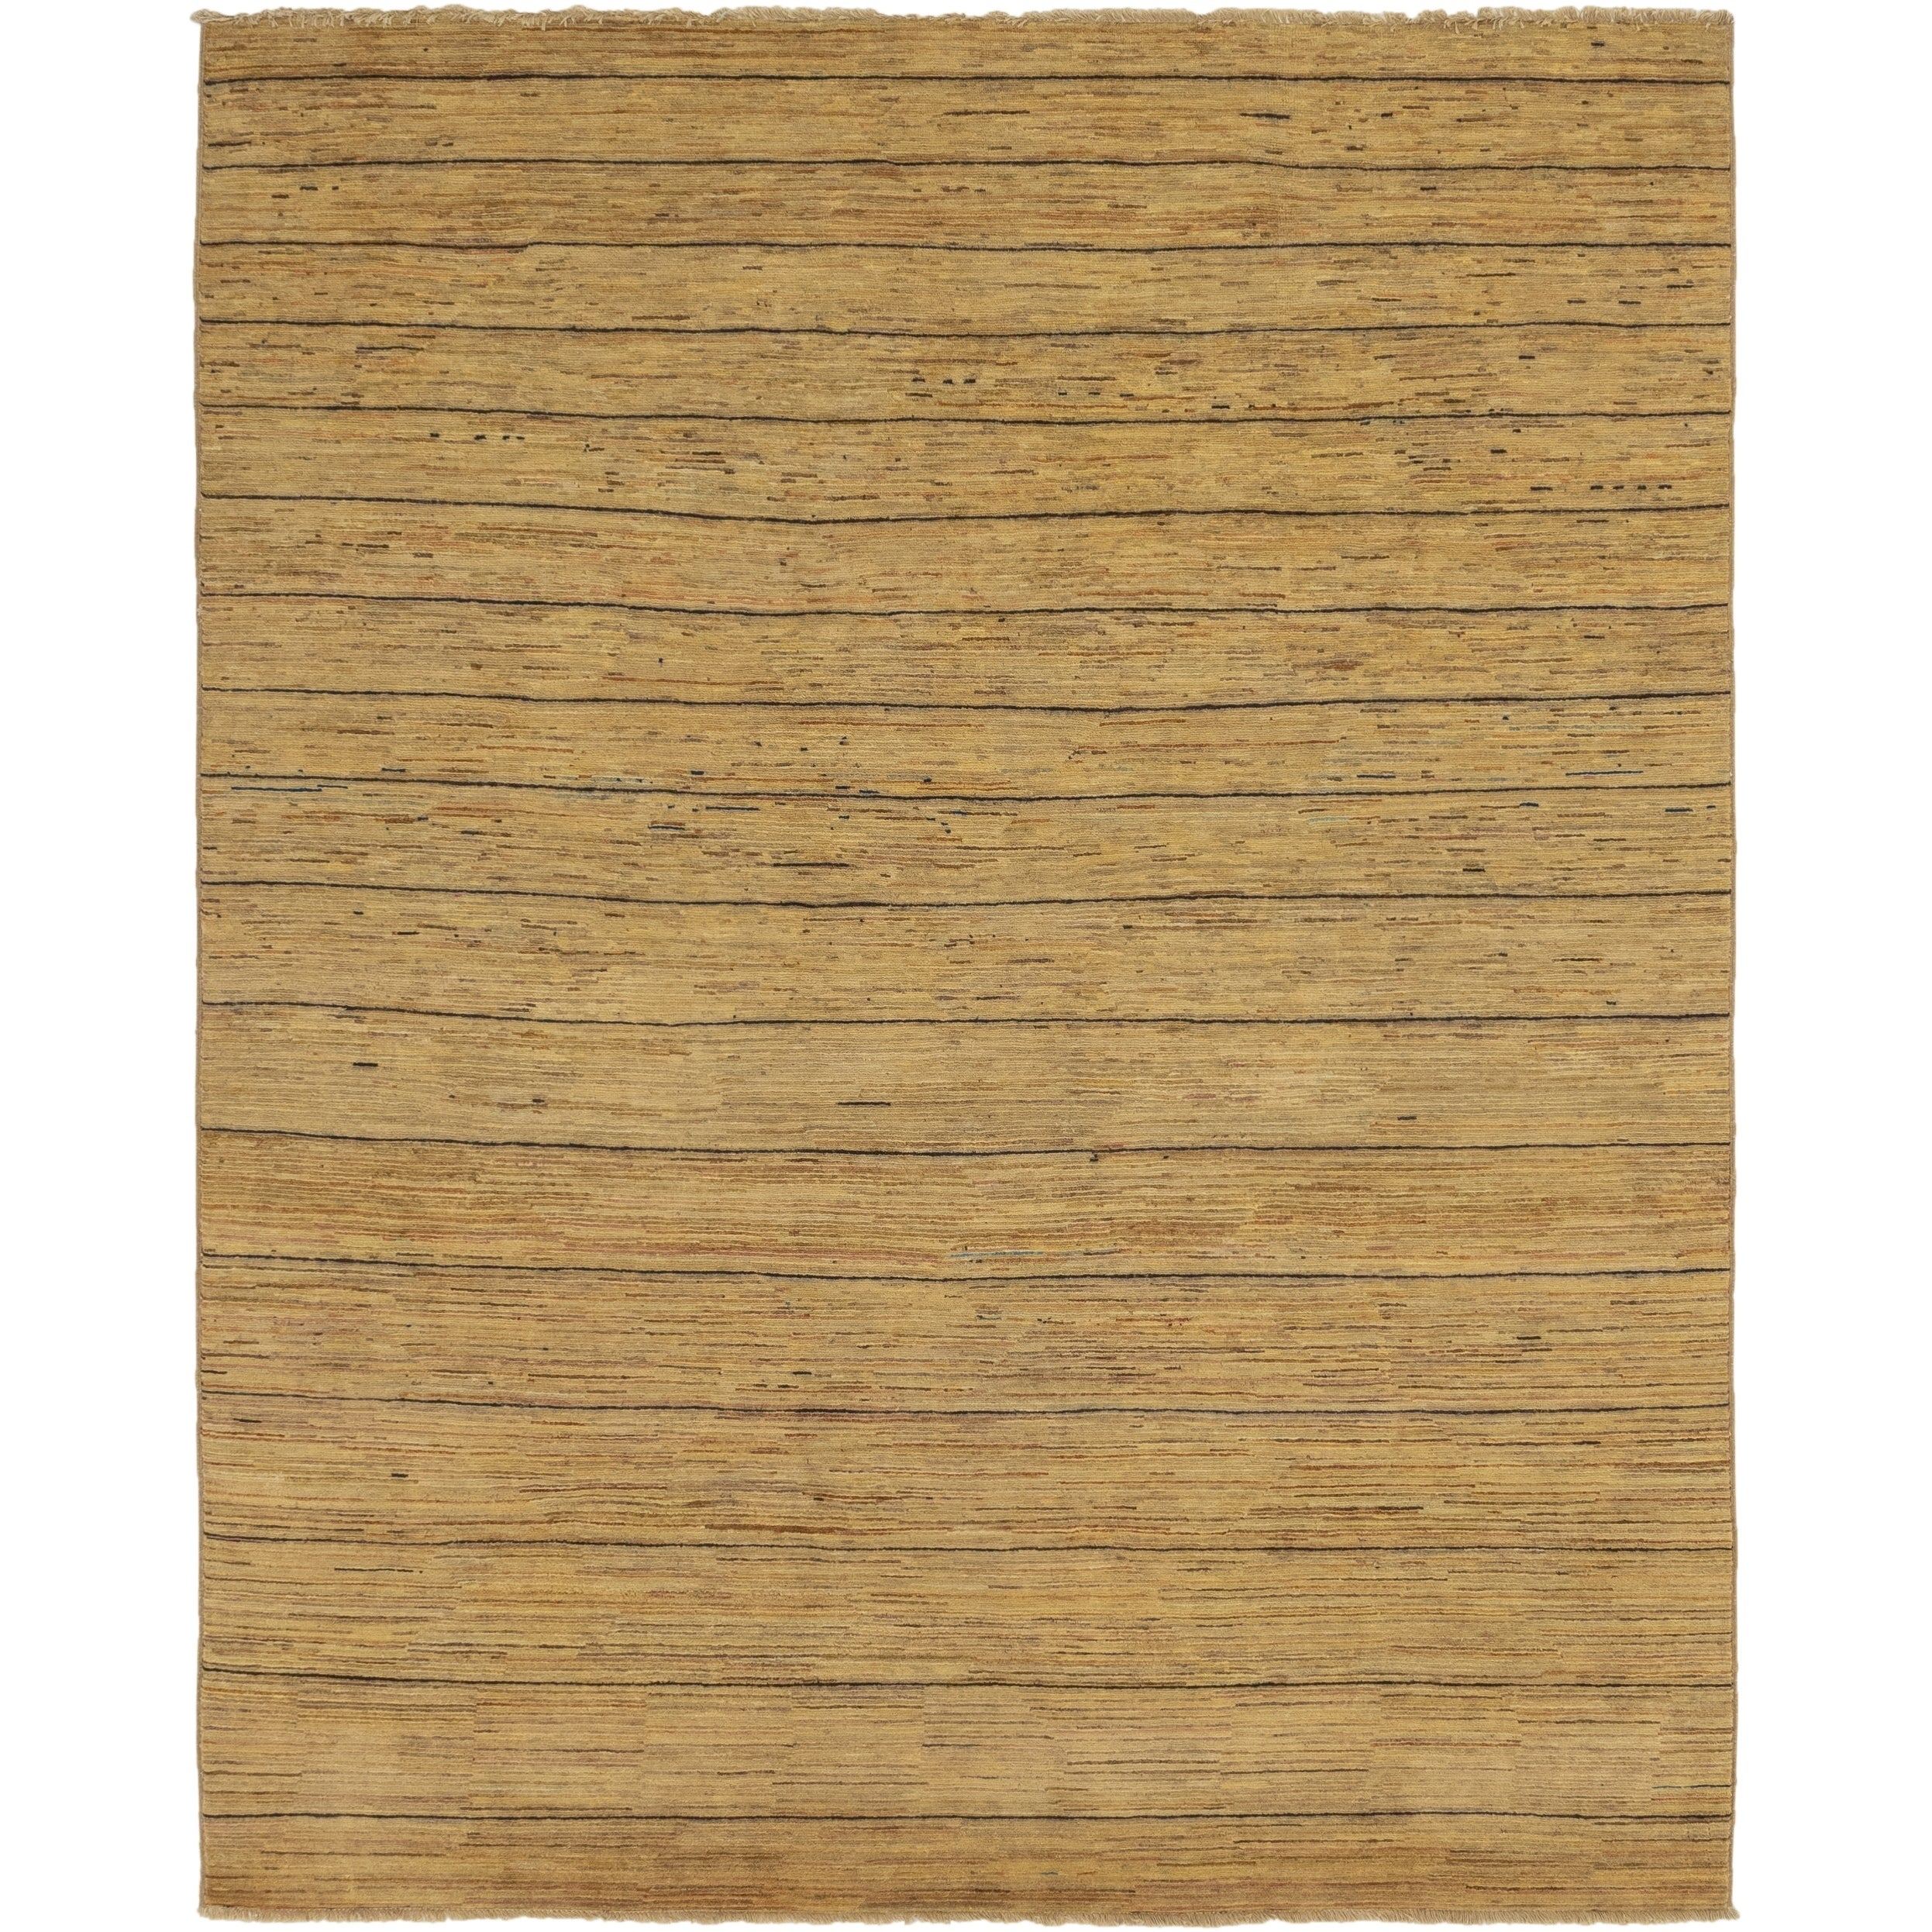 Hand Knotted Kashkuli Gabbeh Wool Area Rug - 6 3 x 9 2 (Gold - 6 3 x 9 2)